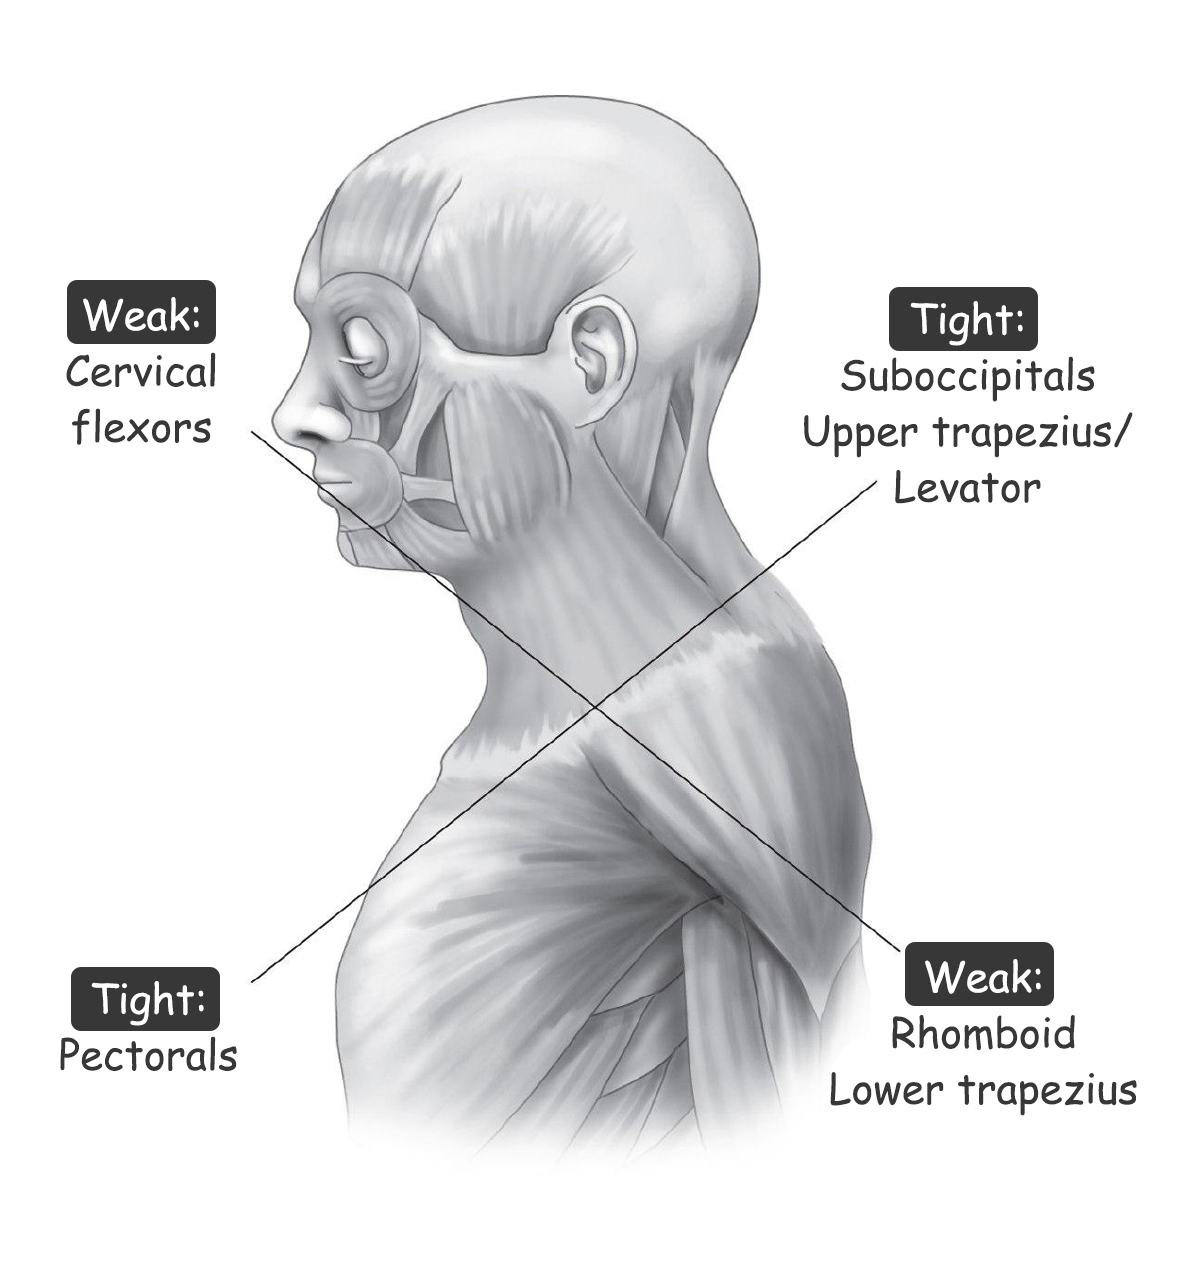 What Are the Muscles Affected in Upper Crossed Syndrome?